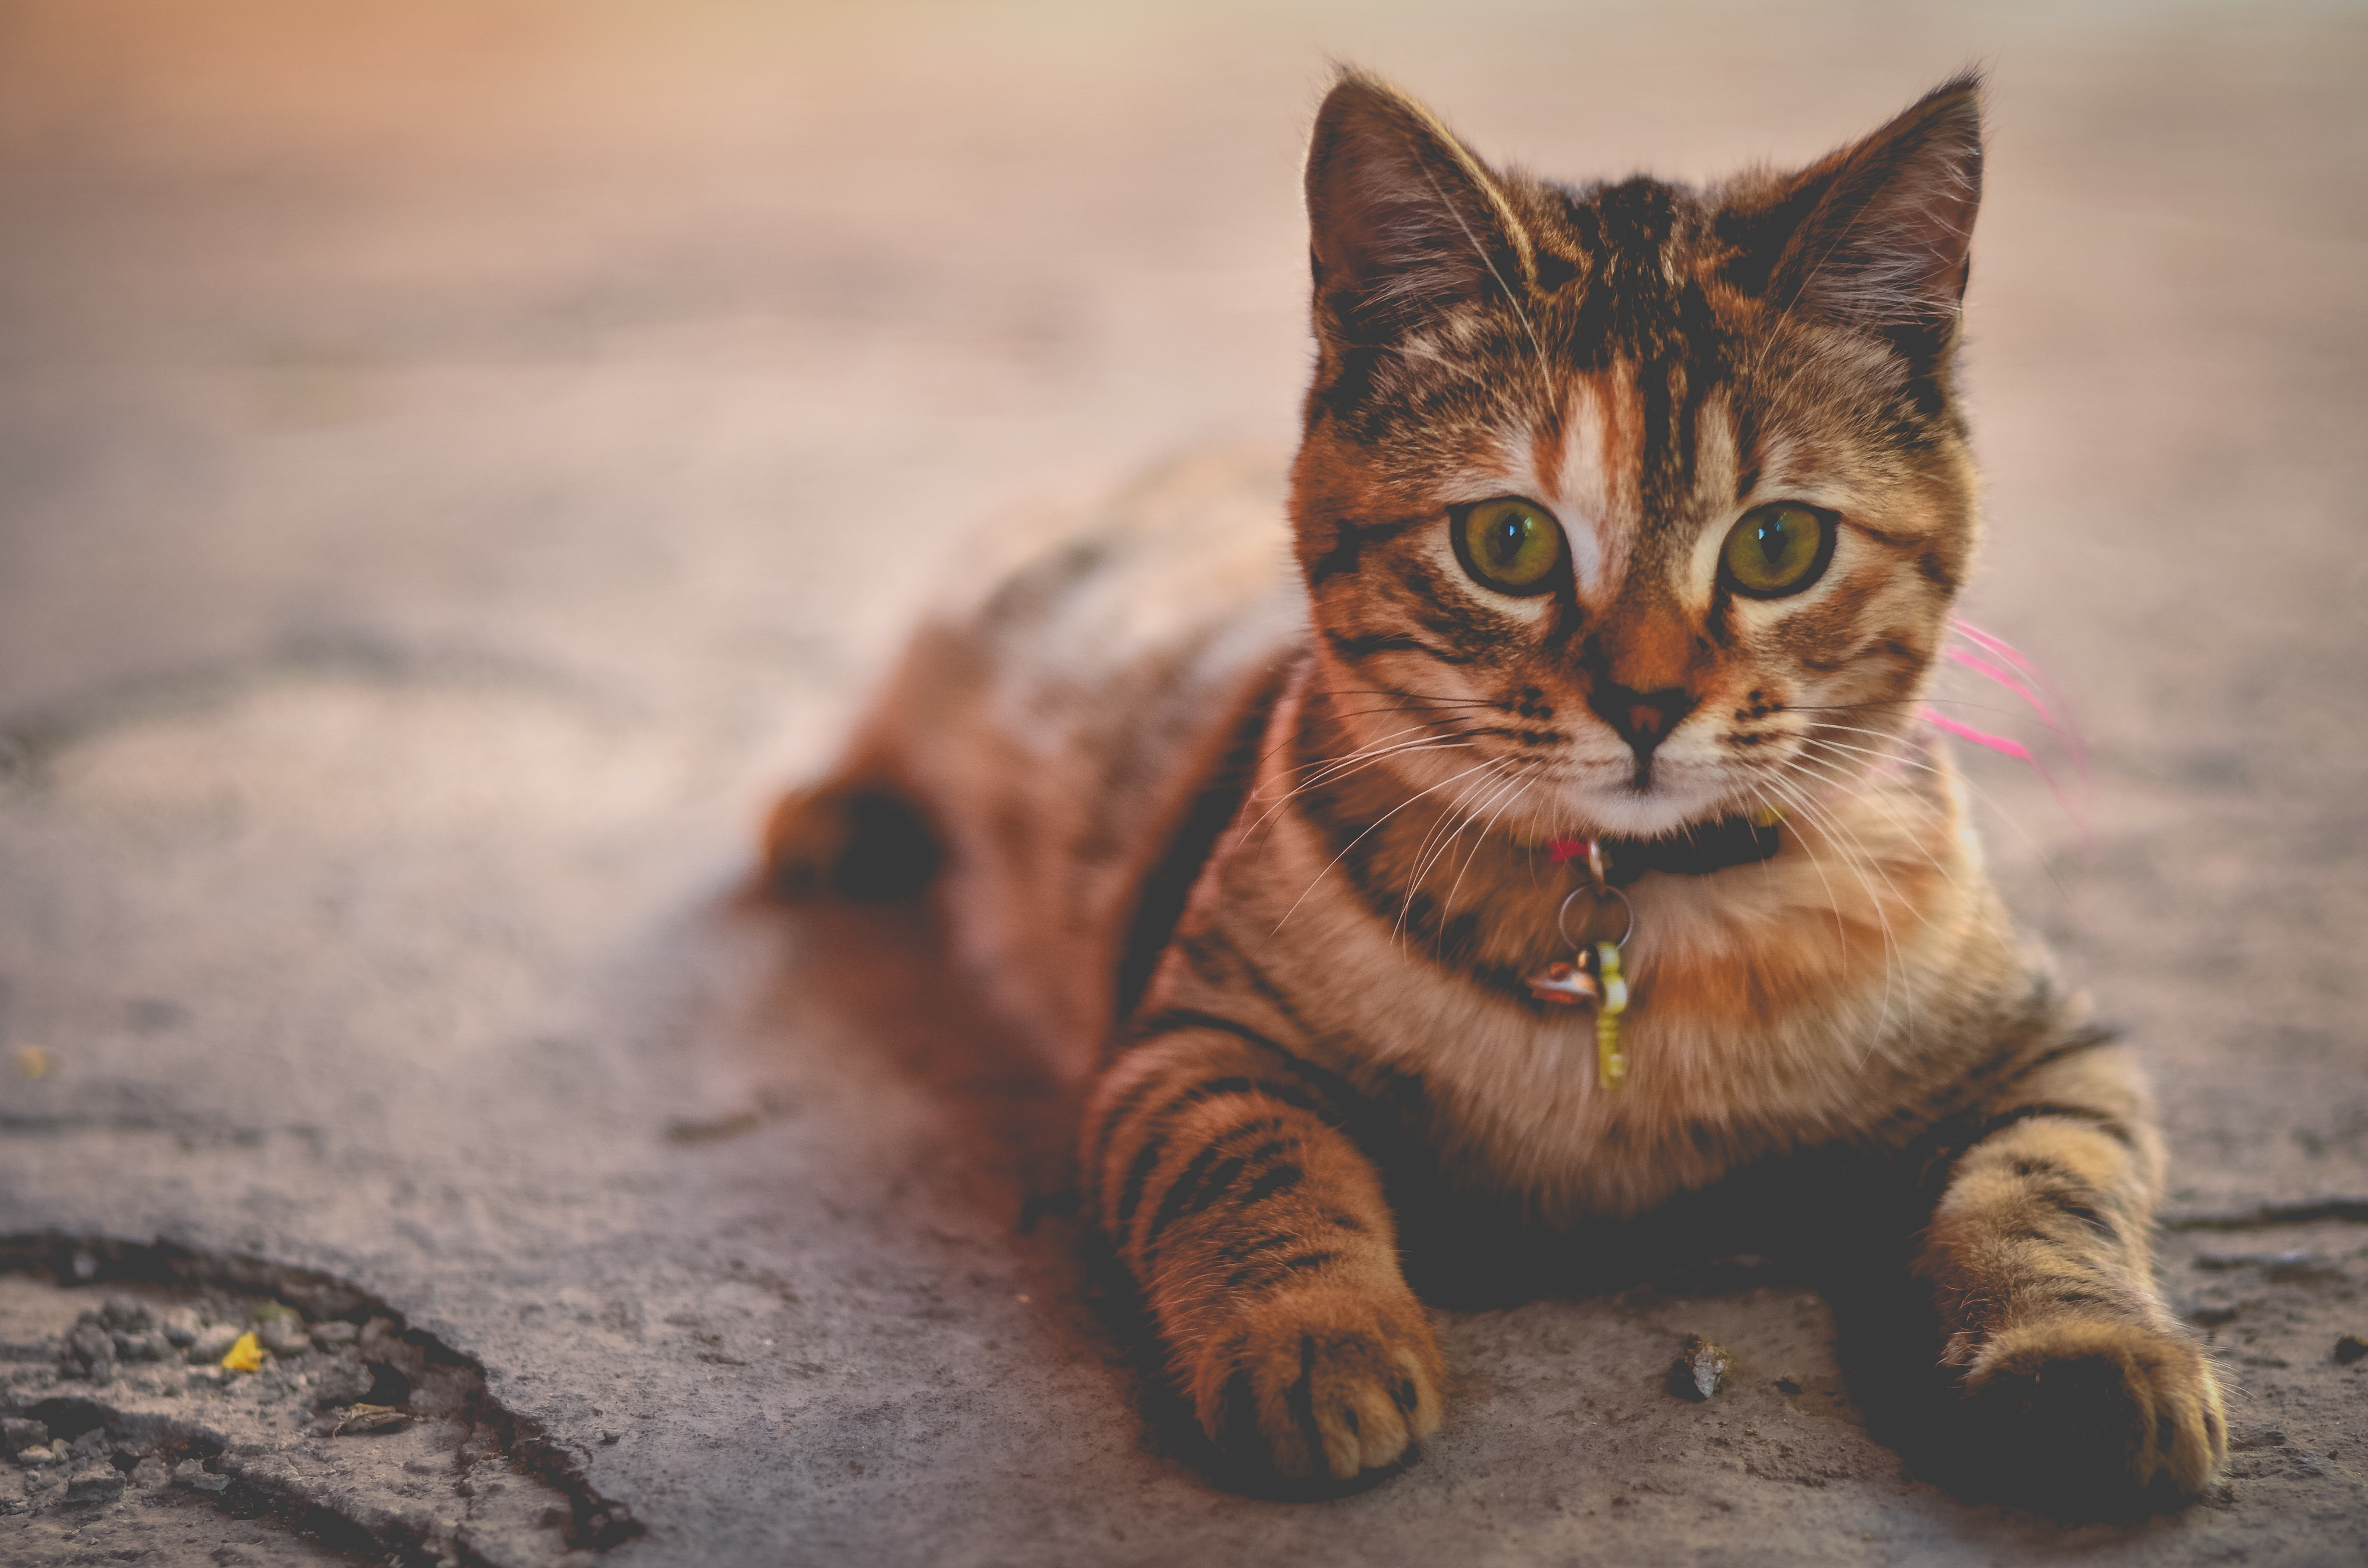 137109 download wallpaper Animals, Lies, Kitty, Kitten, Striped, Collar screensavers and pictures for free